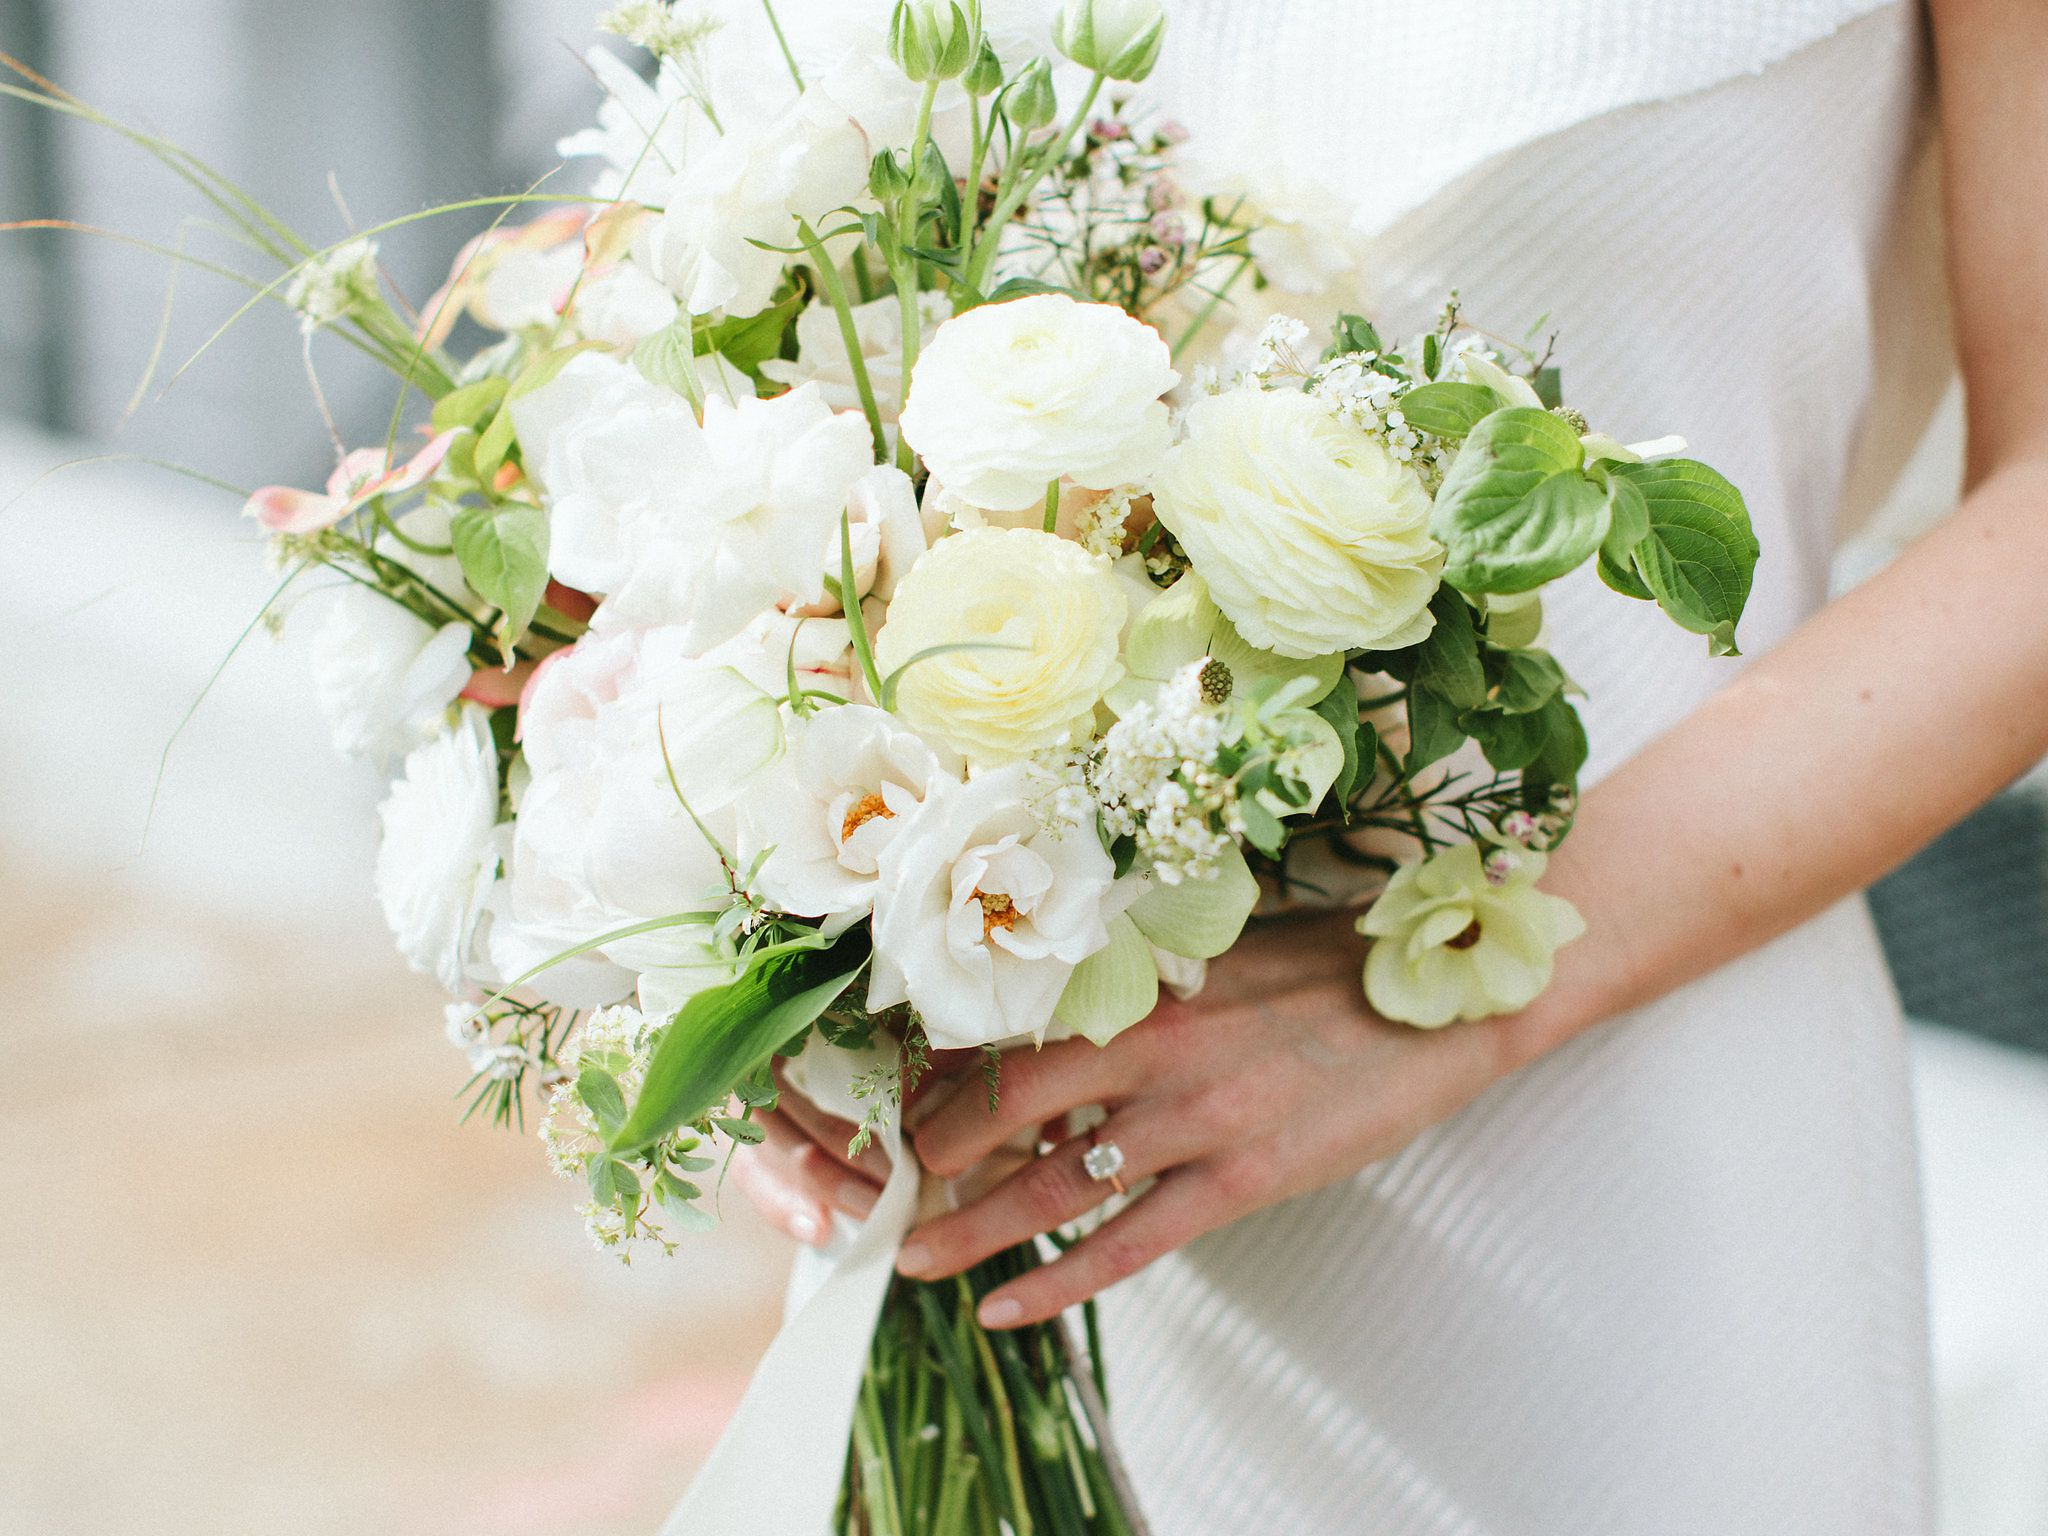 32 Ways to Use White Ranunculus in Your Wedding Décor